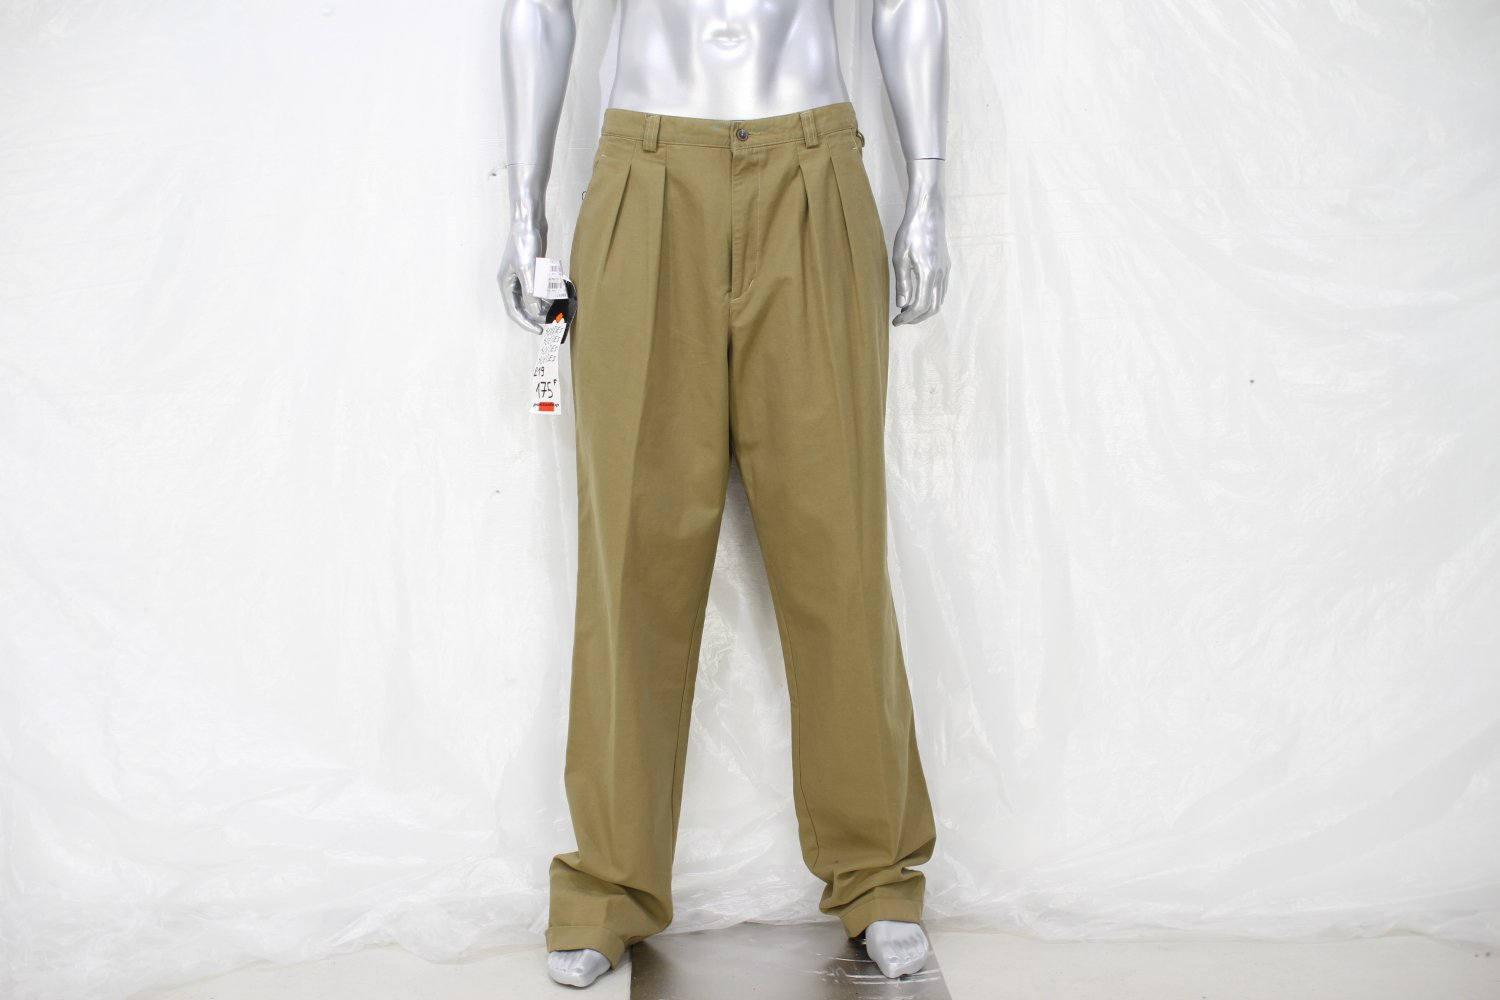 PARIS 80s TROUSERS N.O.S